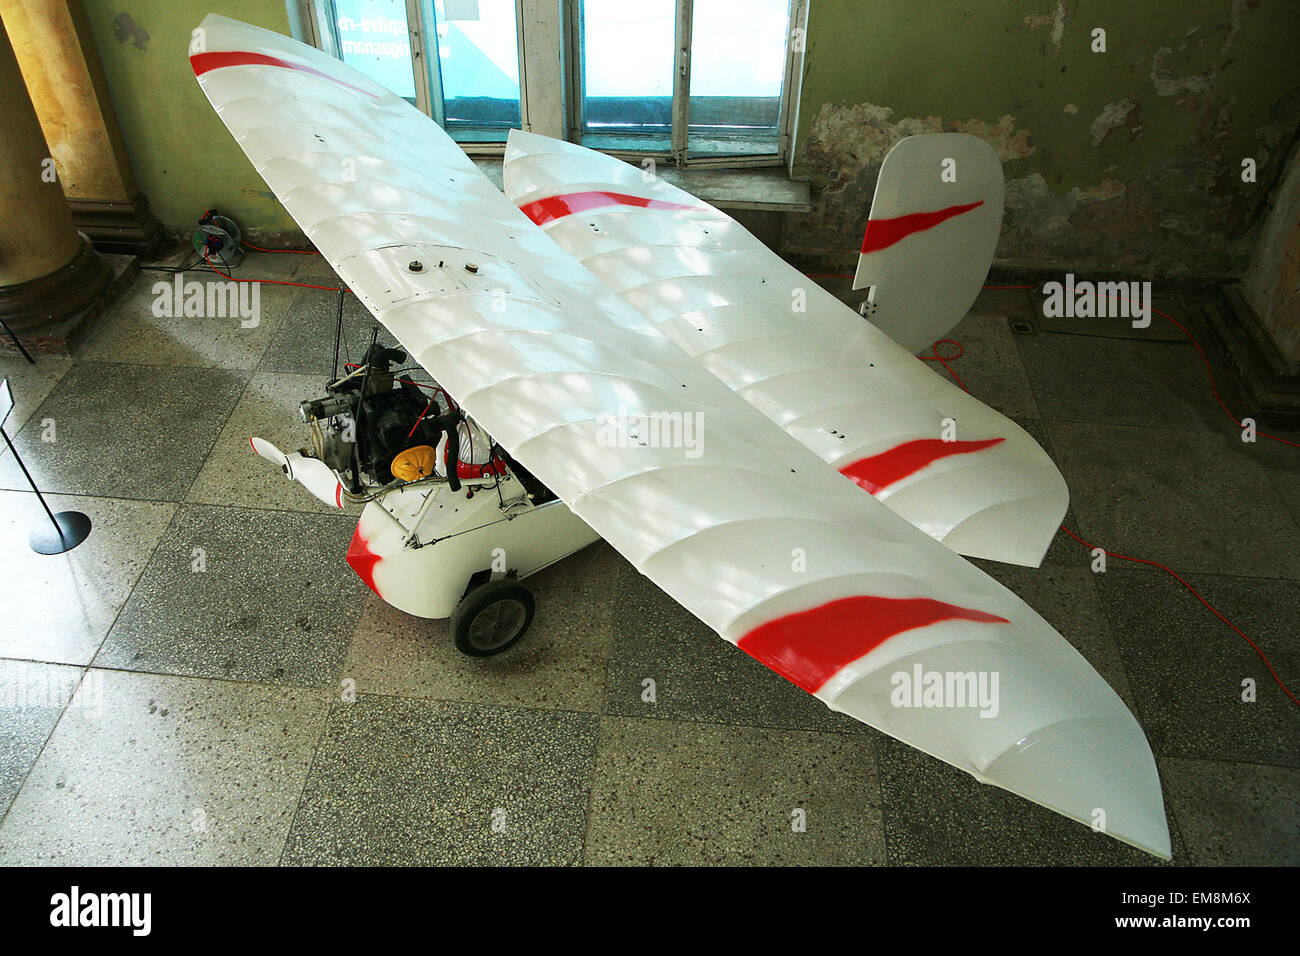 airplane with engine propeller and double wings - Stock Image